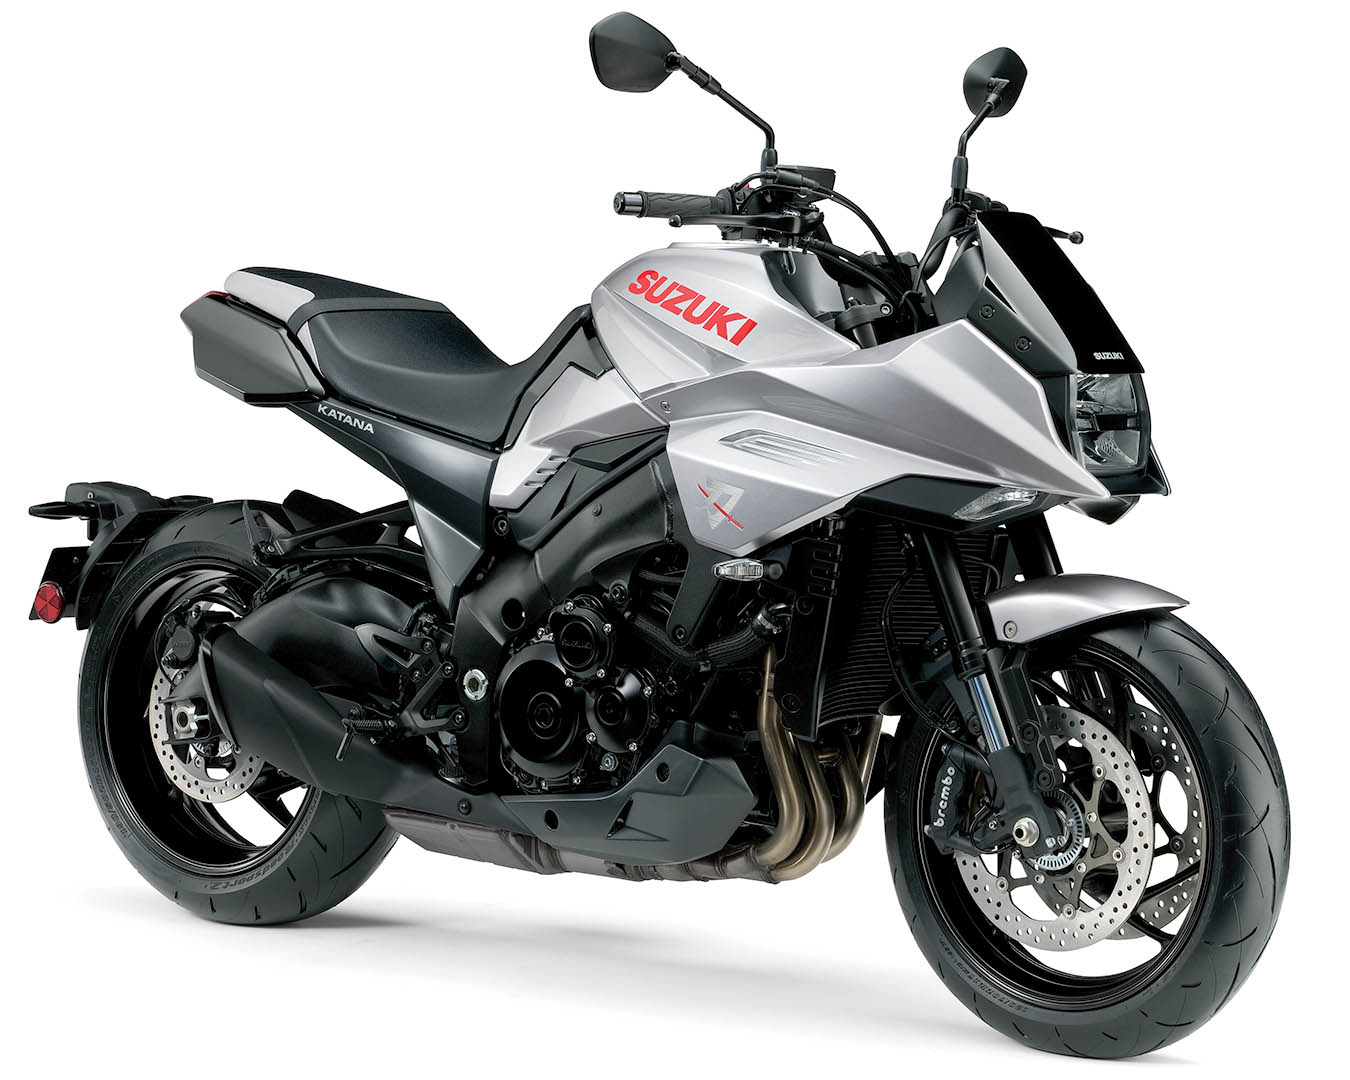 2020 Suzuki Katana Arrival Date, Price, and Colors First Look (4 Fast Facts)